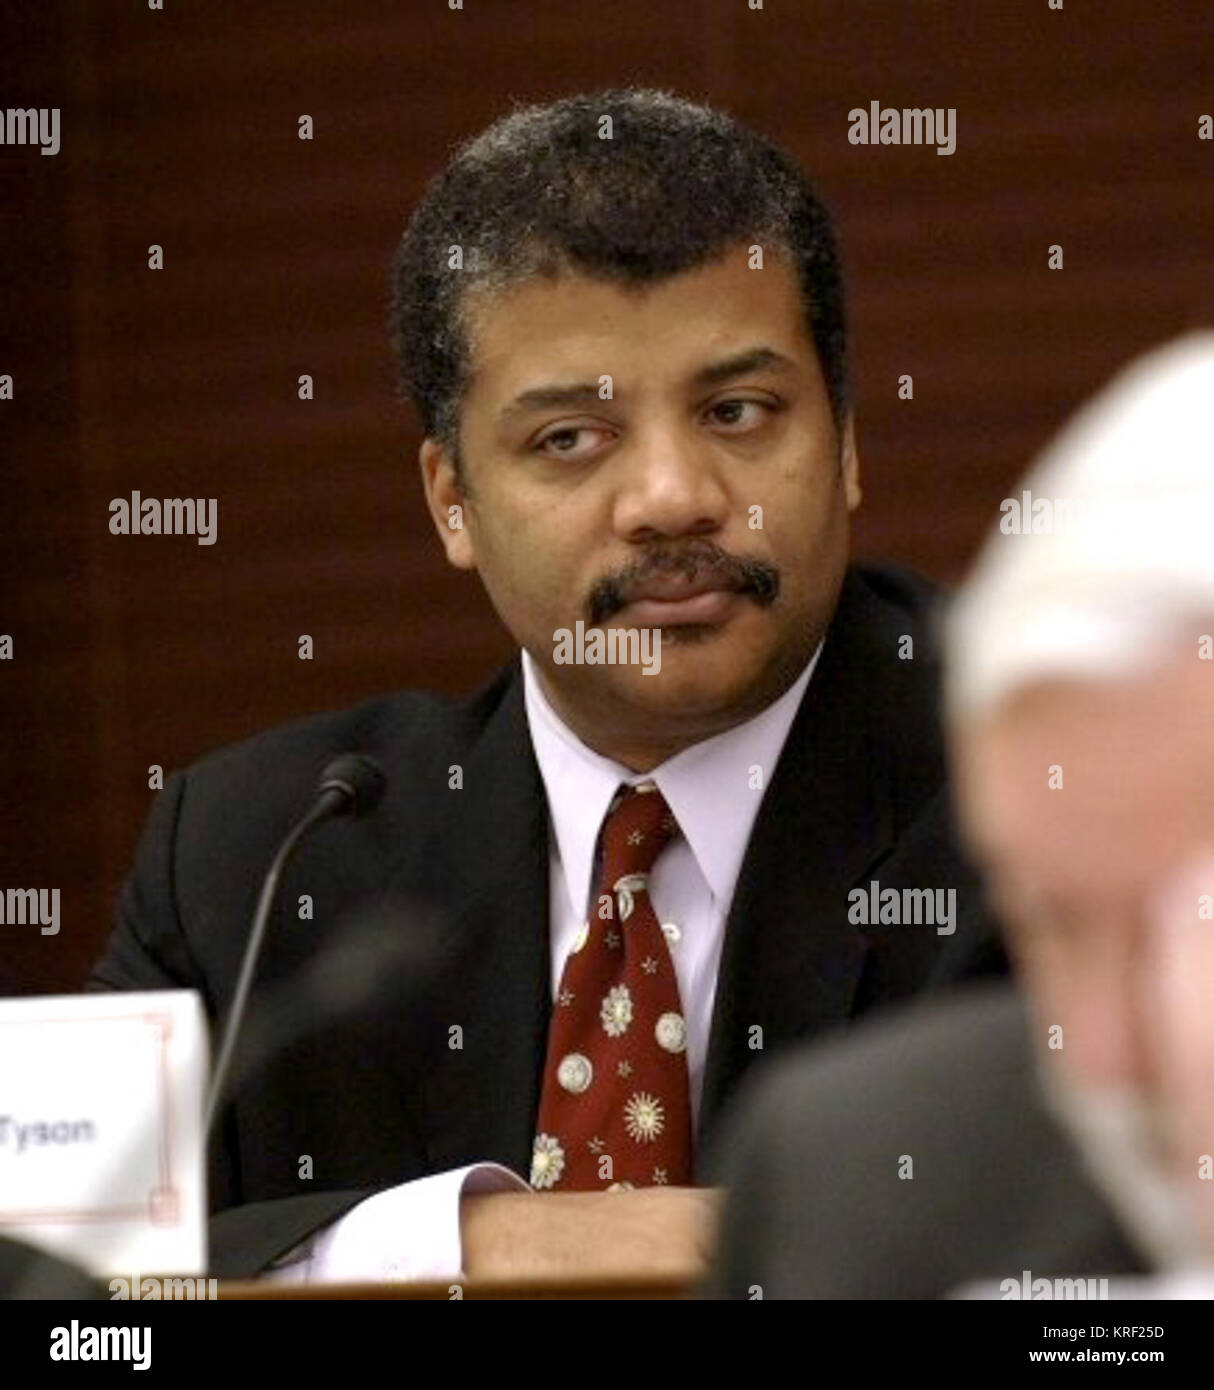 Dr. Neil DeGrasse Tyson, NASA advisory Council member listens during a meeting of the council at the Rayburn Building - Stock Image